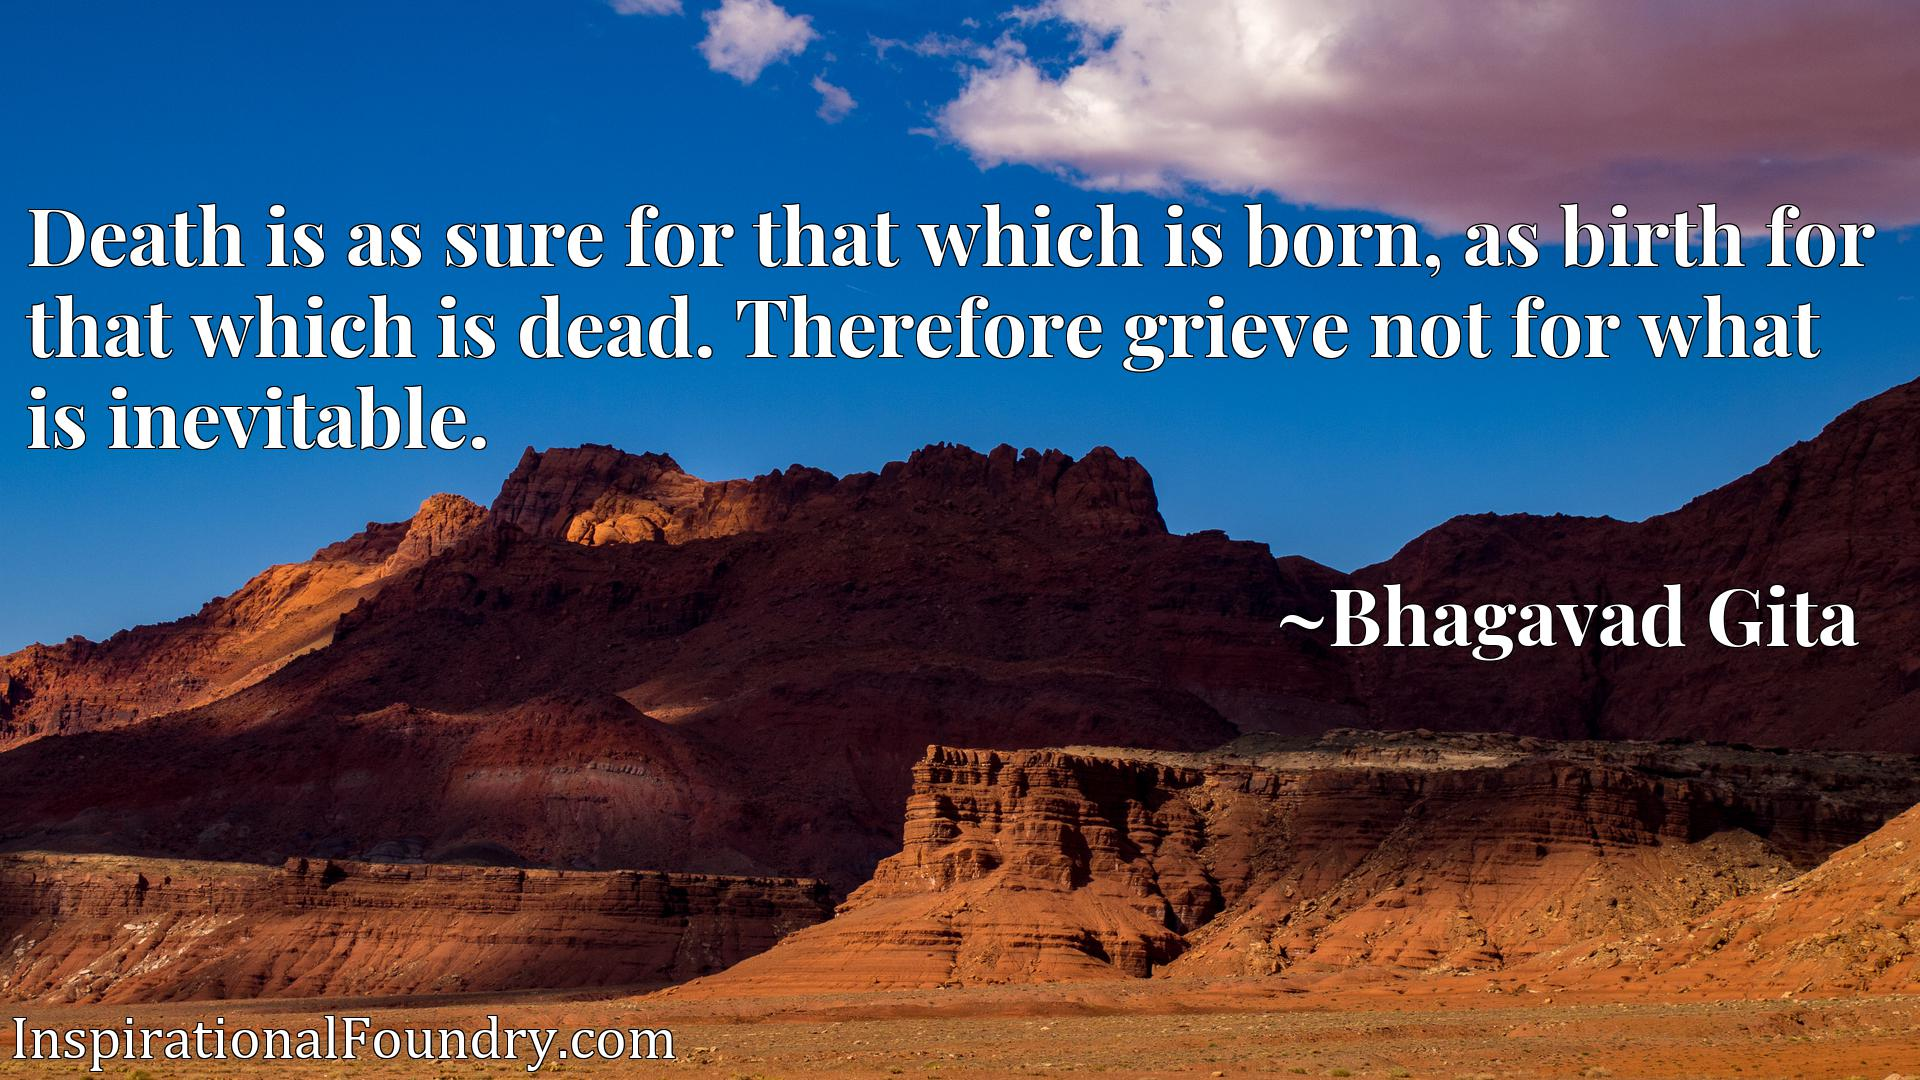 Quote Picture :Death is as sure for that which is born, as birth for that which is dead. Therefore grieve not for what is inevitable.